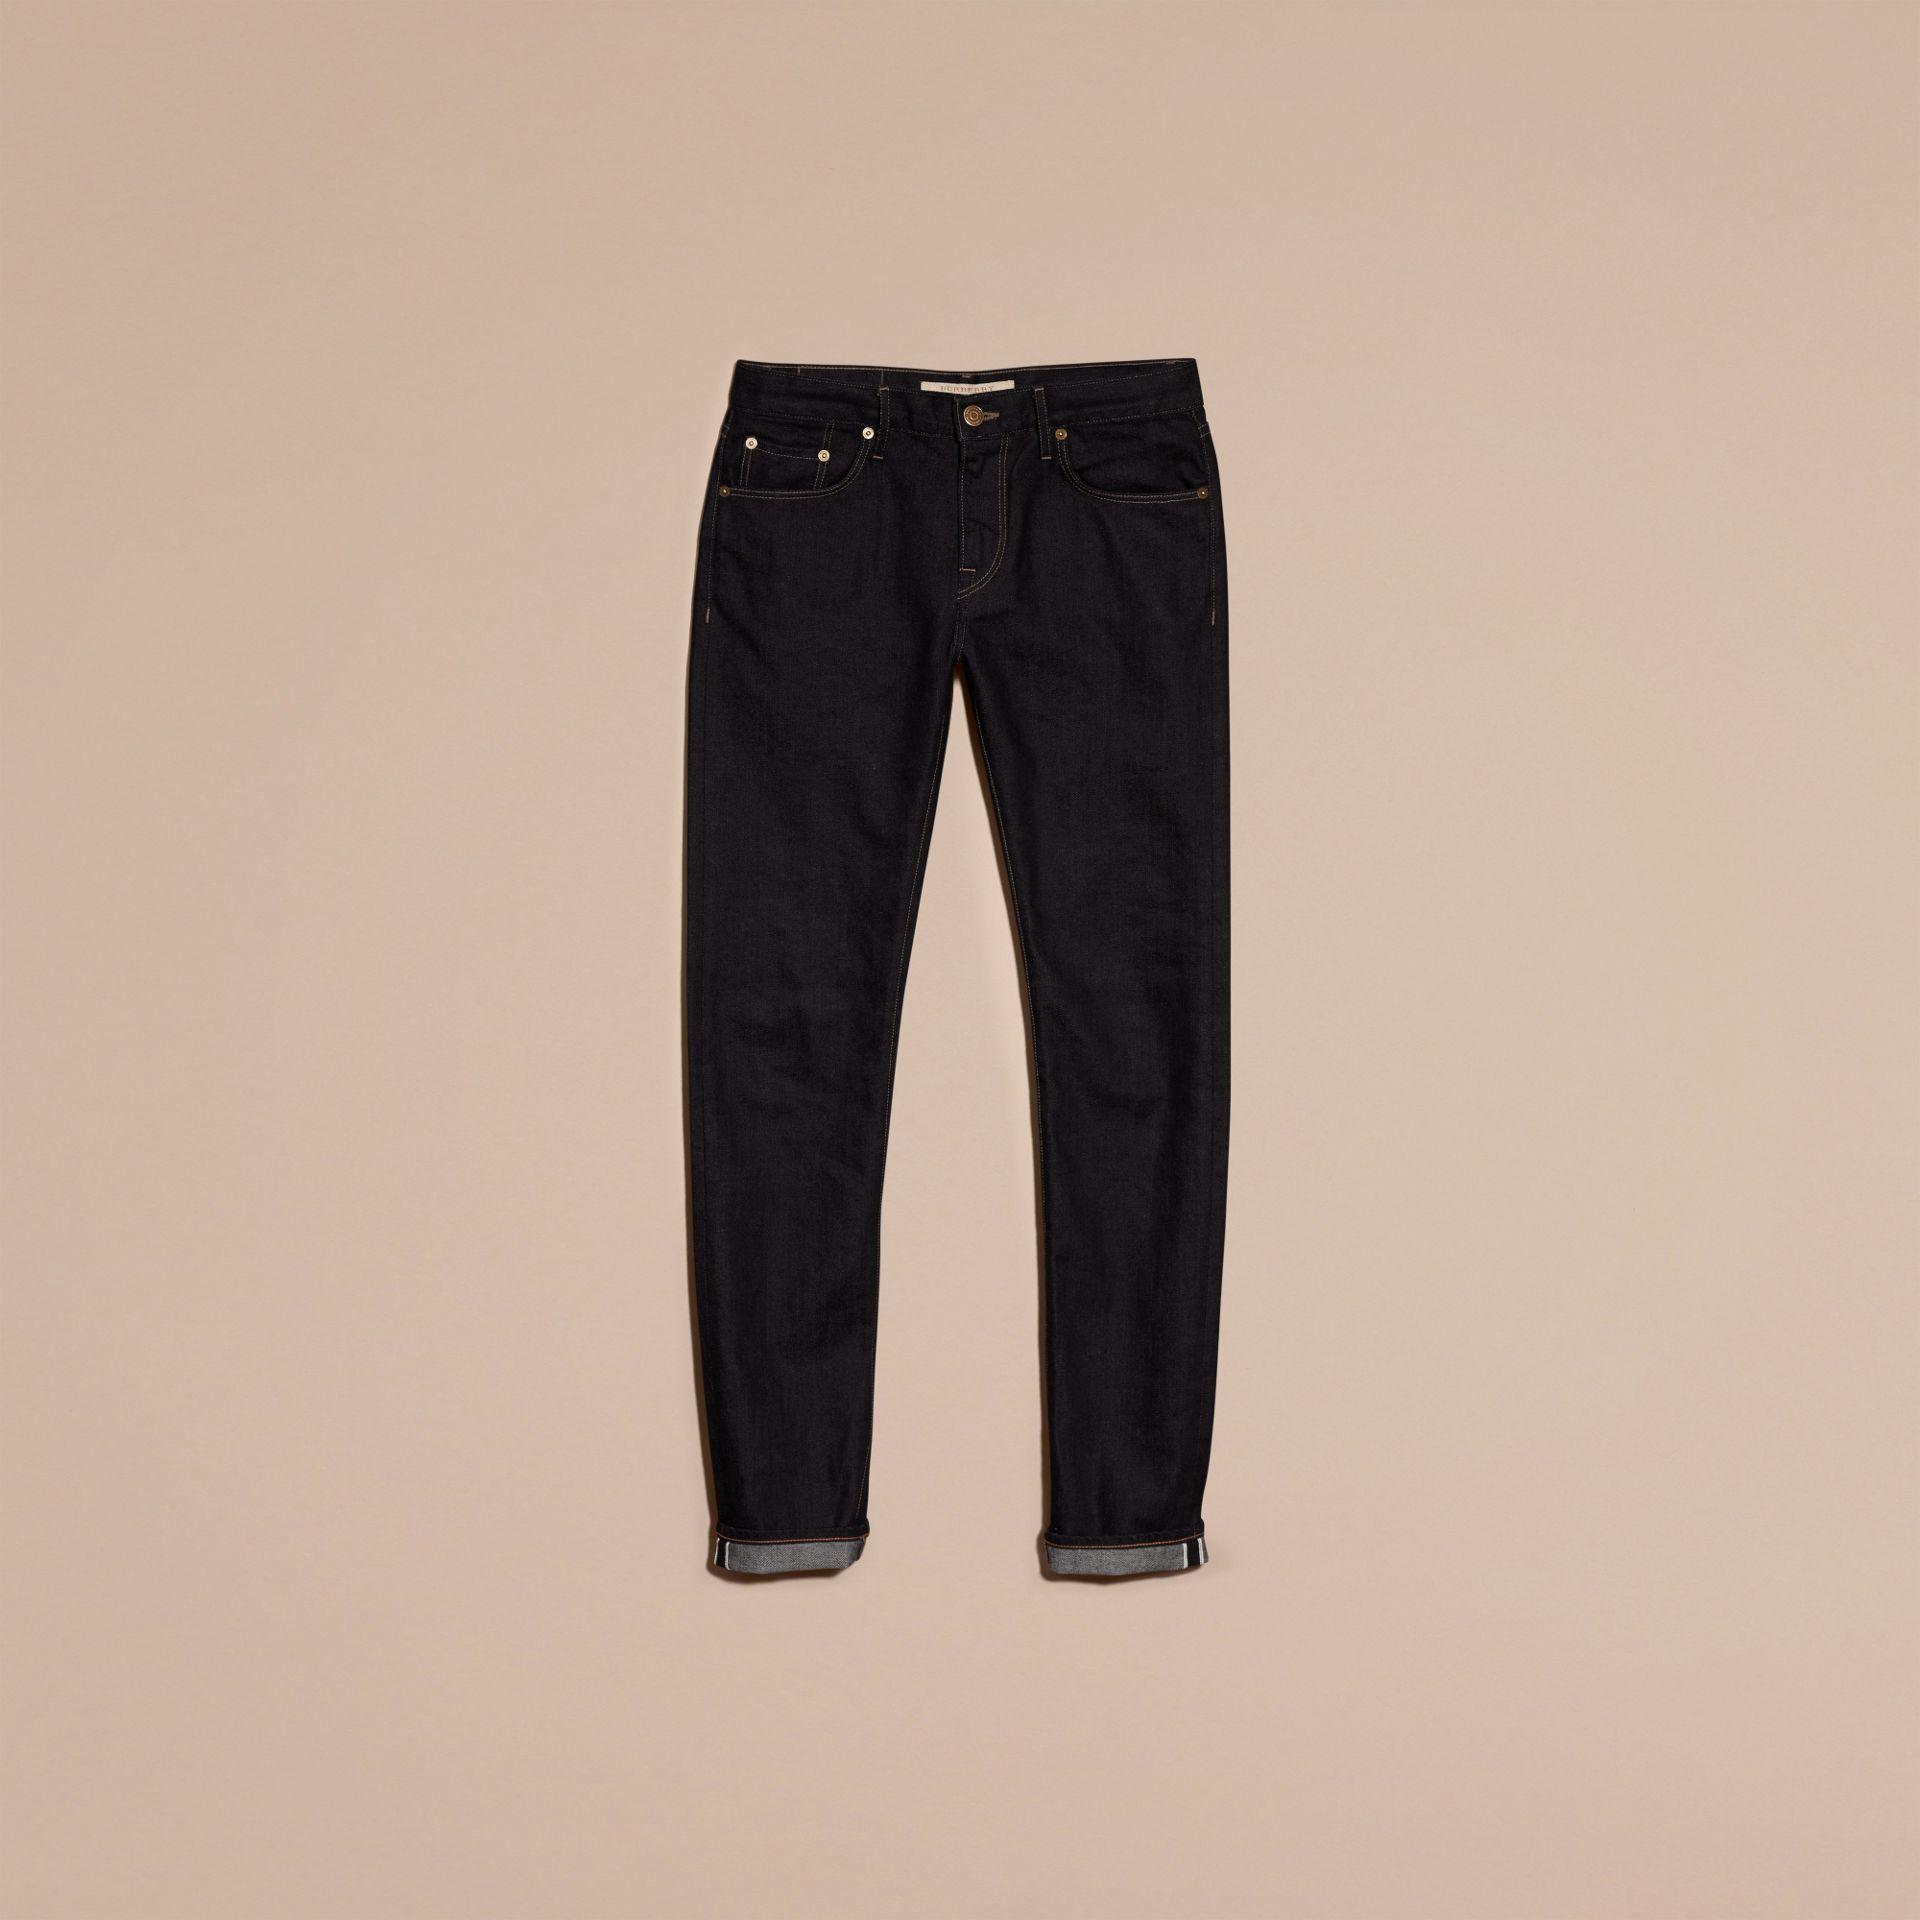 Indigo sombre Jean slim en denim selvedge japonais extensible - photo de la galerie 4